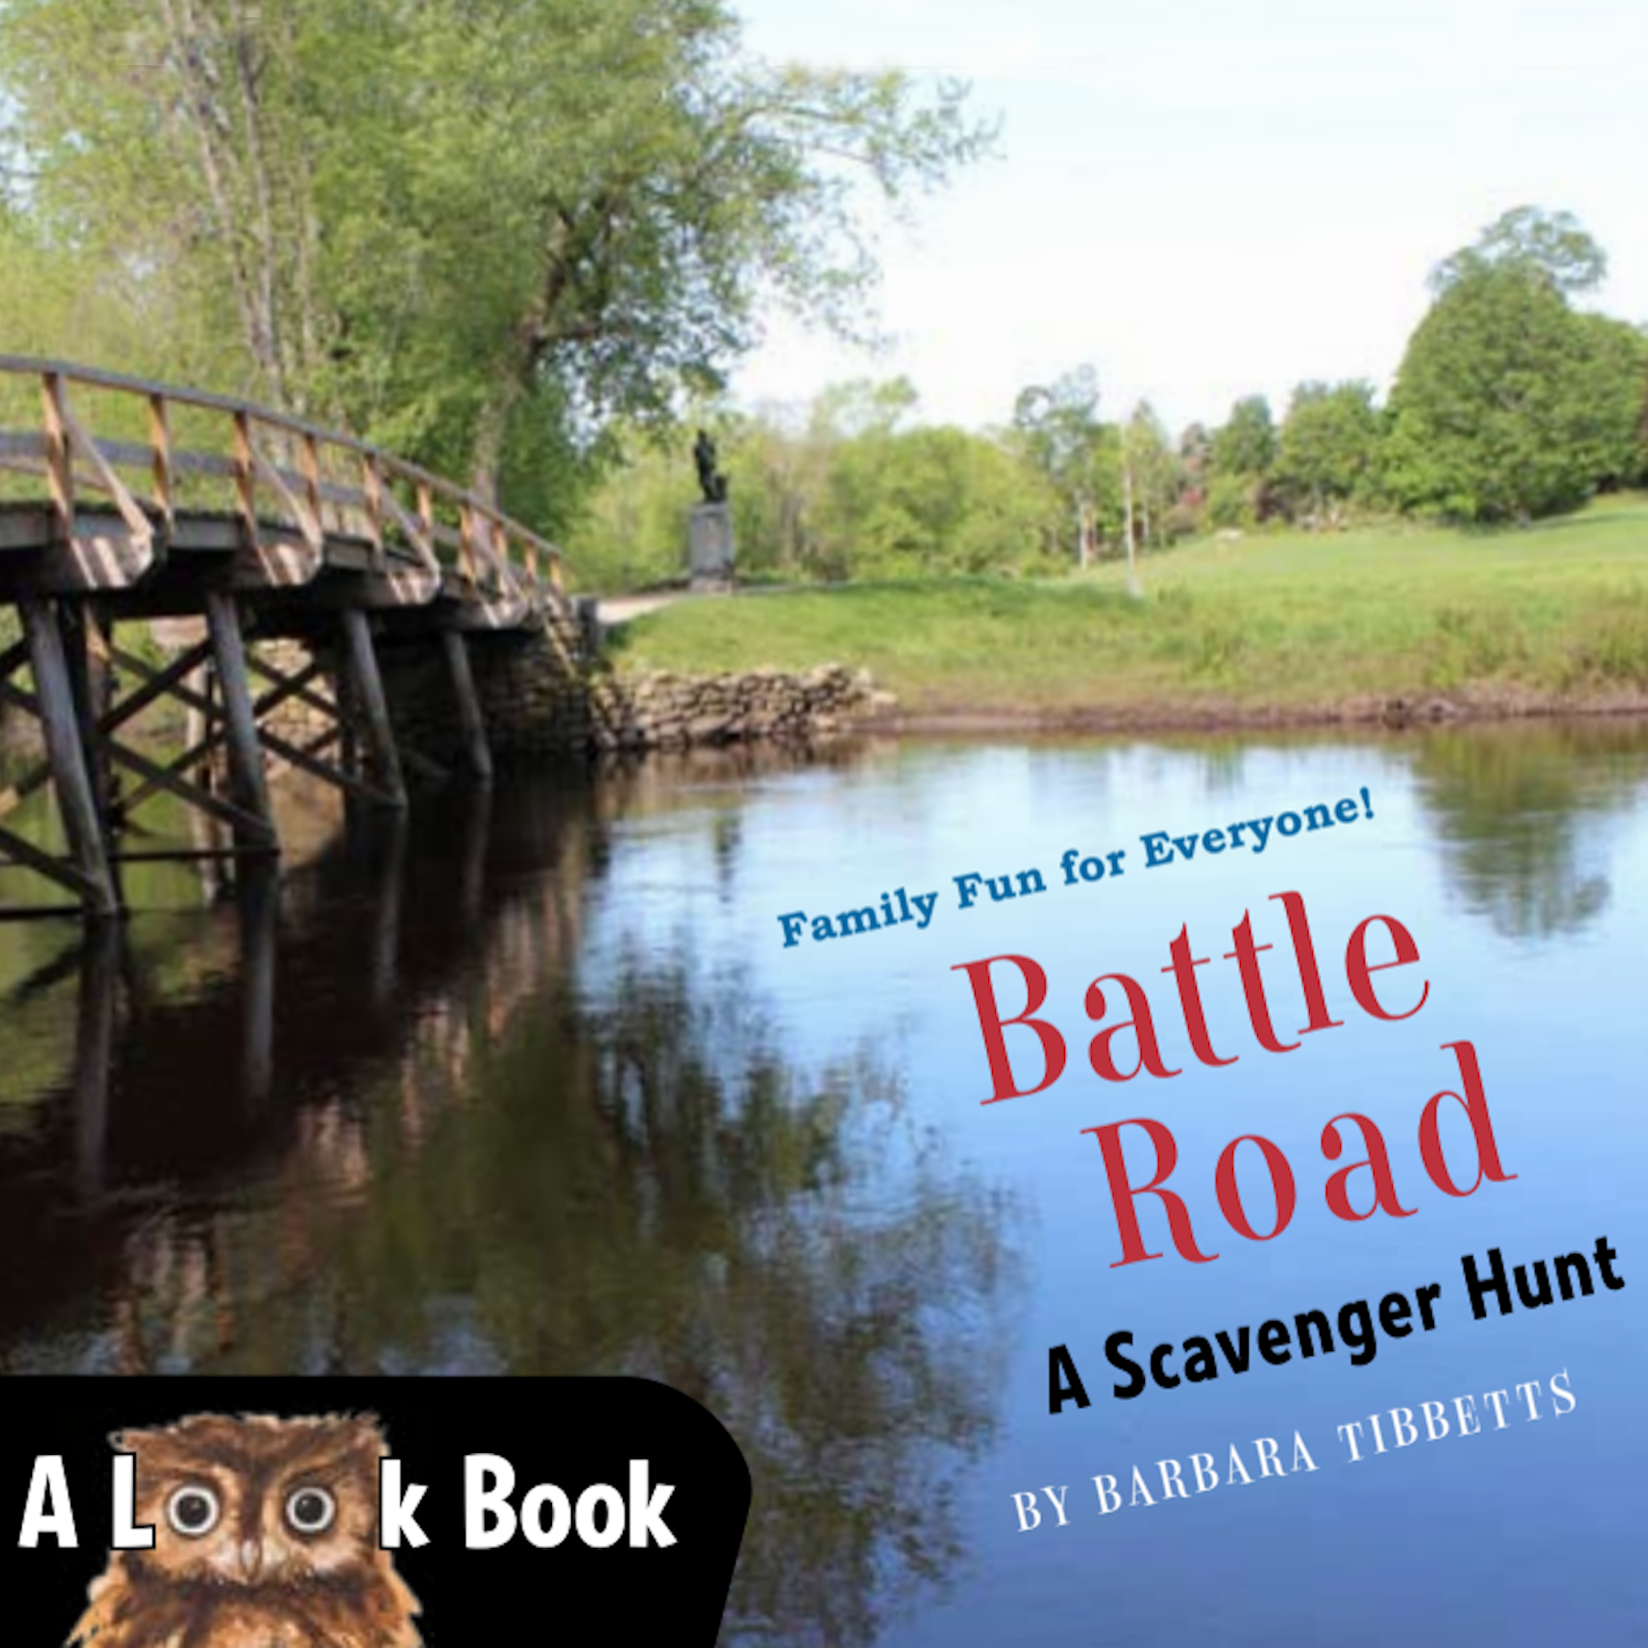 Scavenger Hunt in a Book